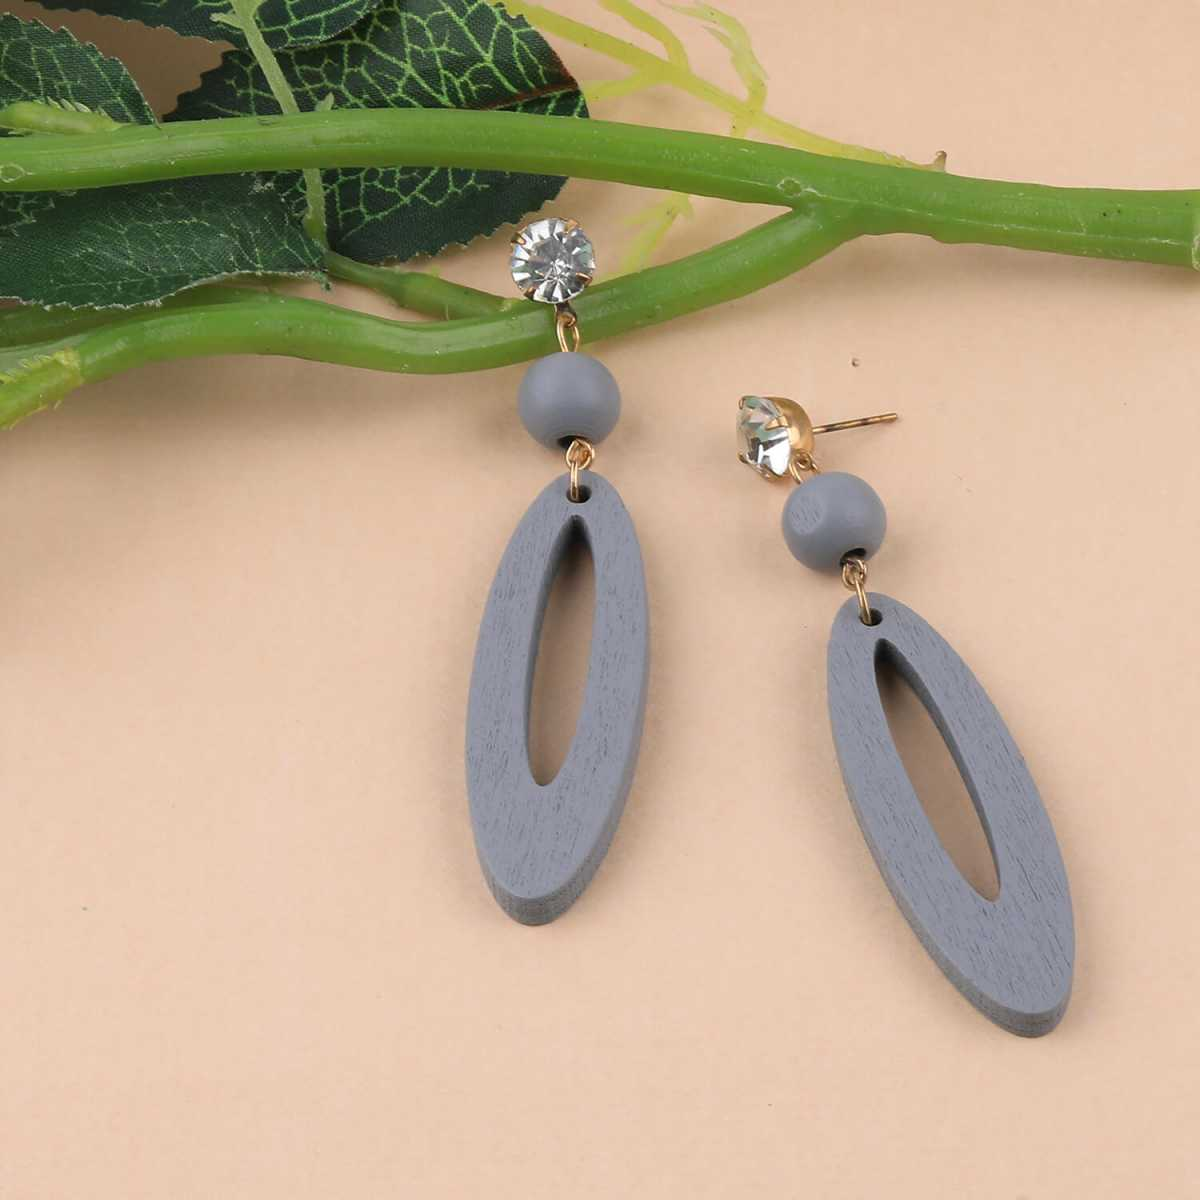 SILVER SHINE Beautiful Stylish Earring Grey Wooden Light Weight Dangler Earrings for Girls and Women.